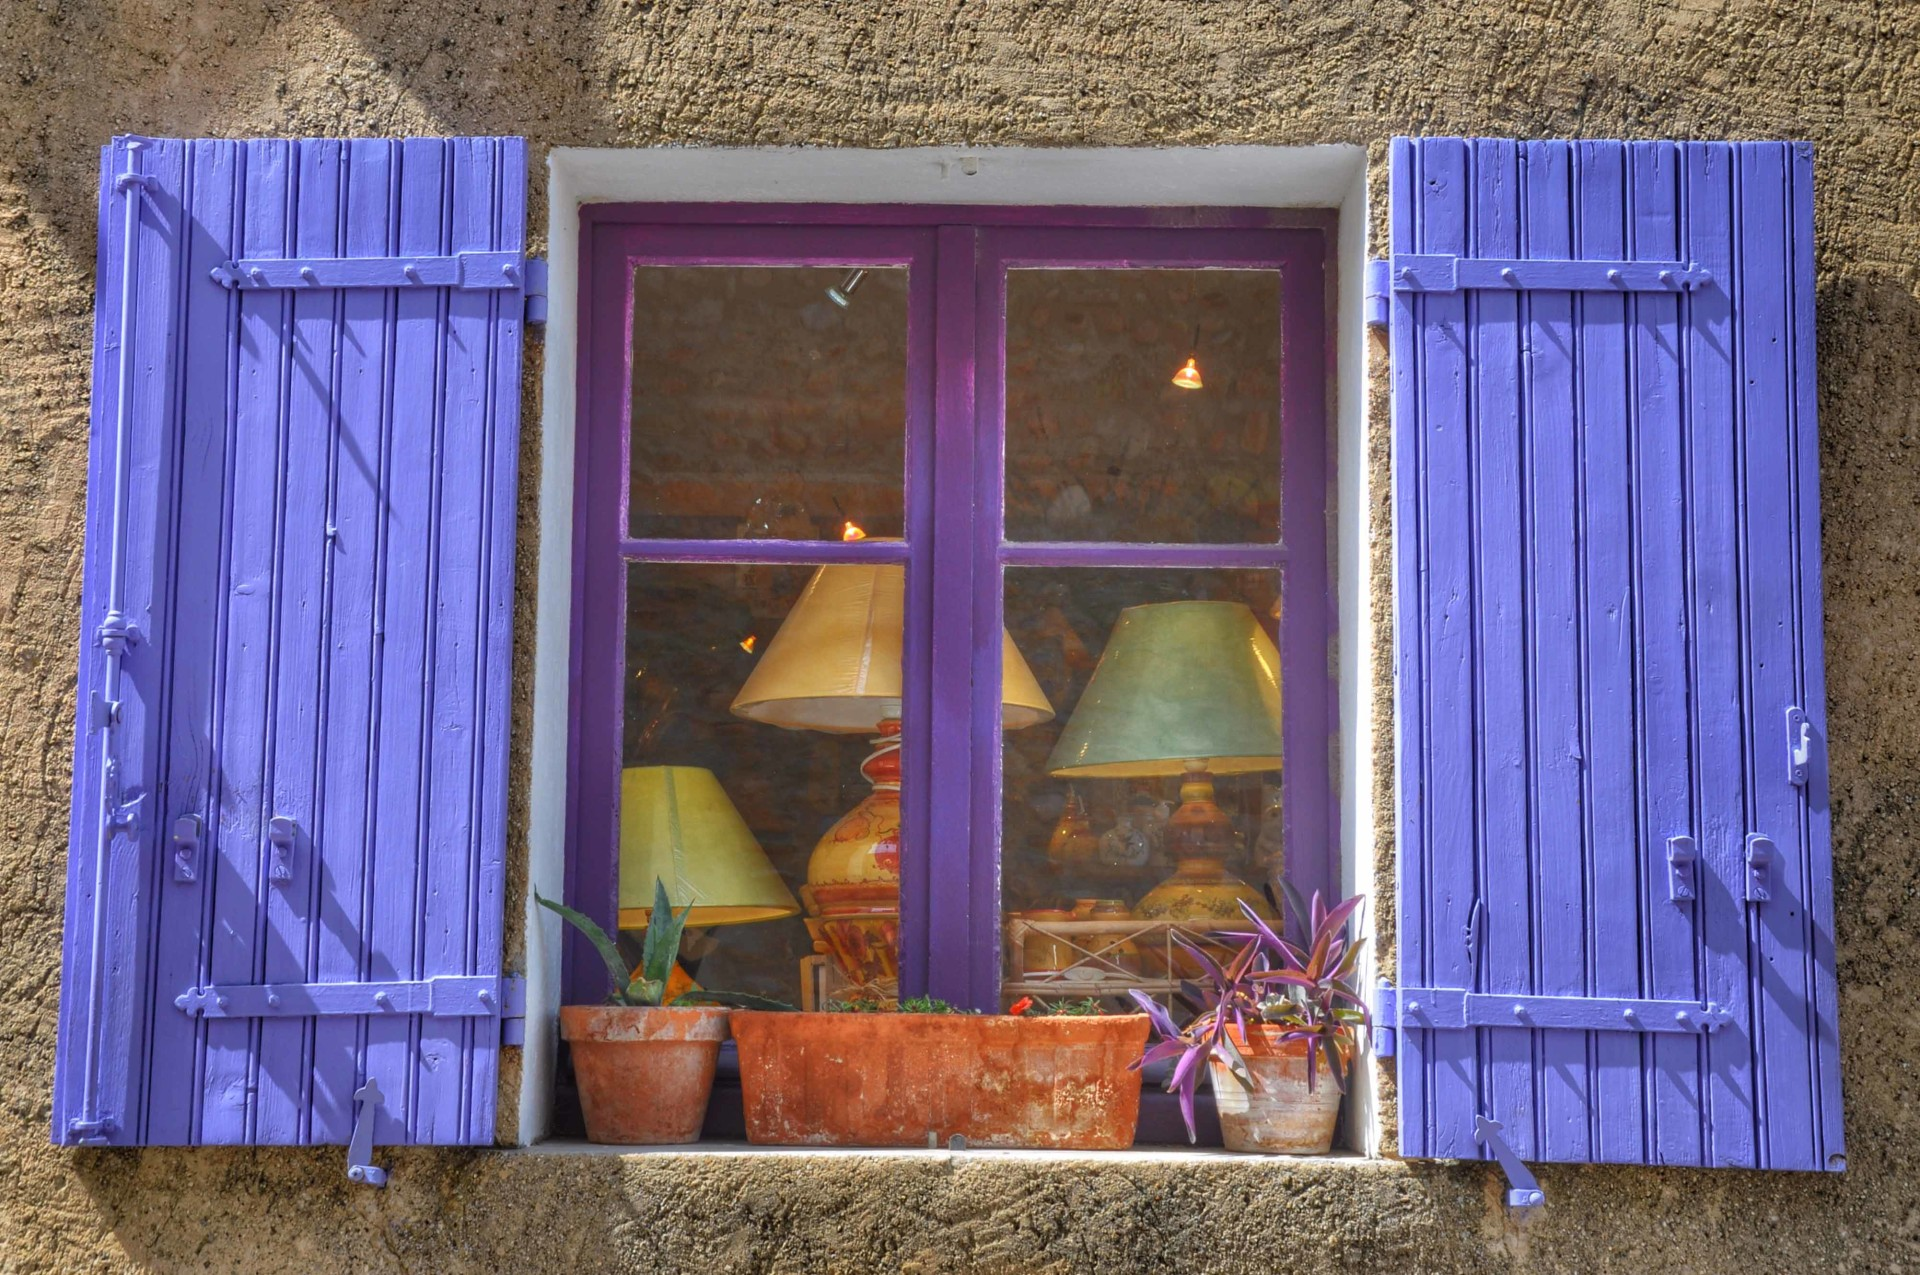 Pretty shop in hight provence